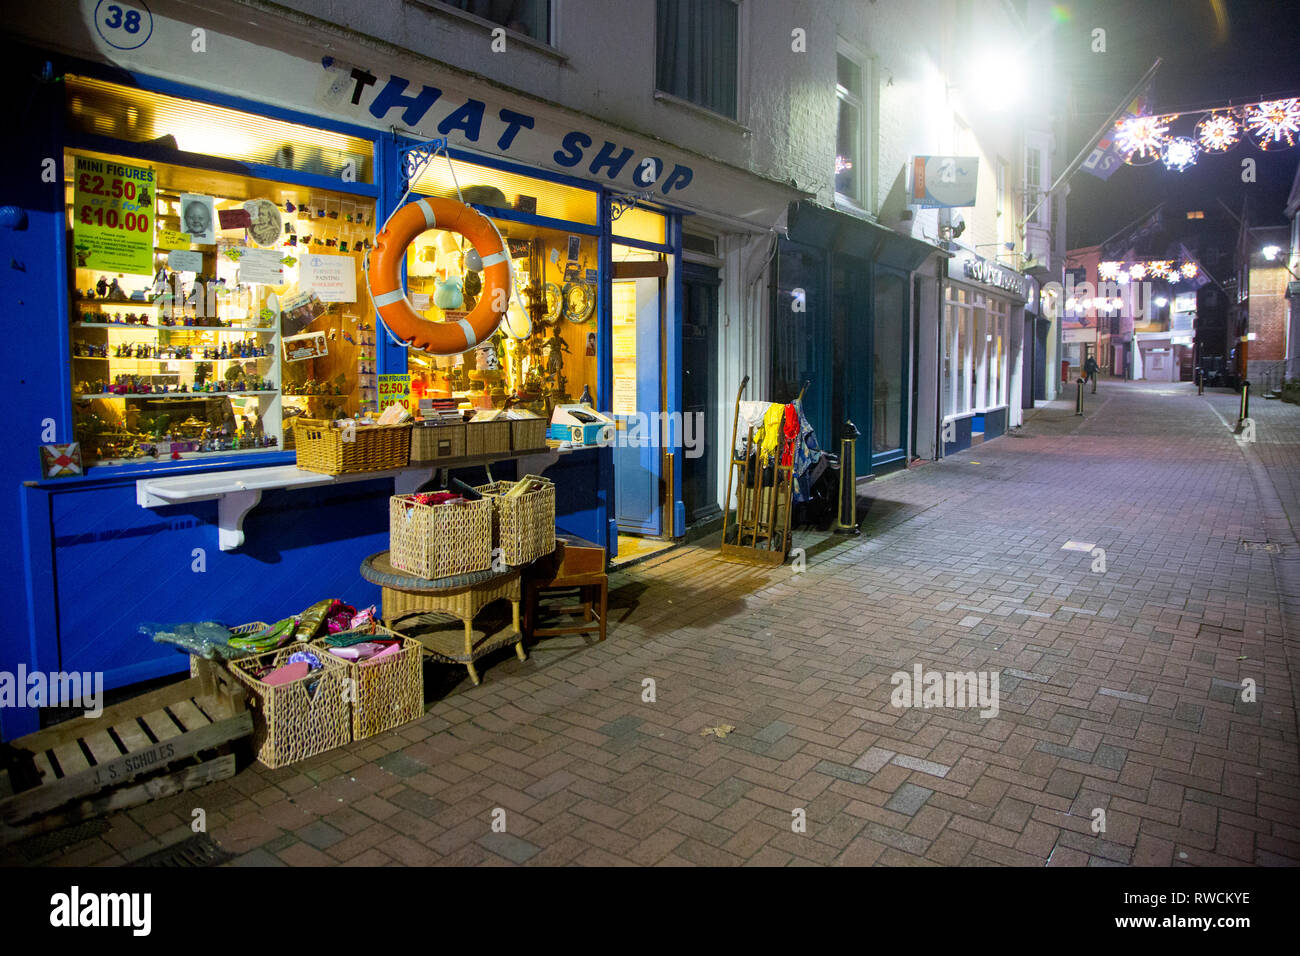 That,Shop, antique,and,curios,curio, collectables, Star Wars, vinyl, records, photos, High,Street,Cowes, Isle of Wight, UK, - Stock Image